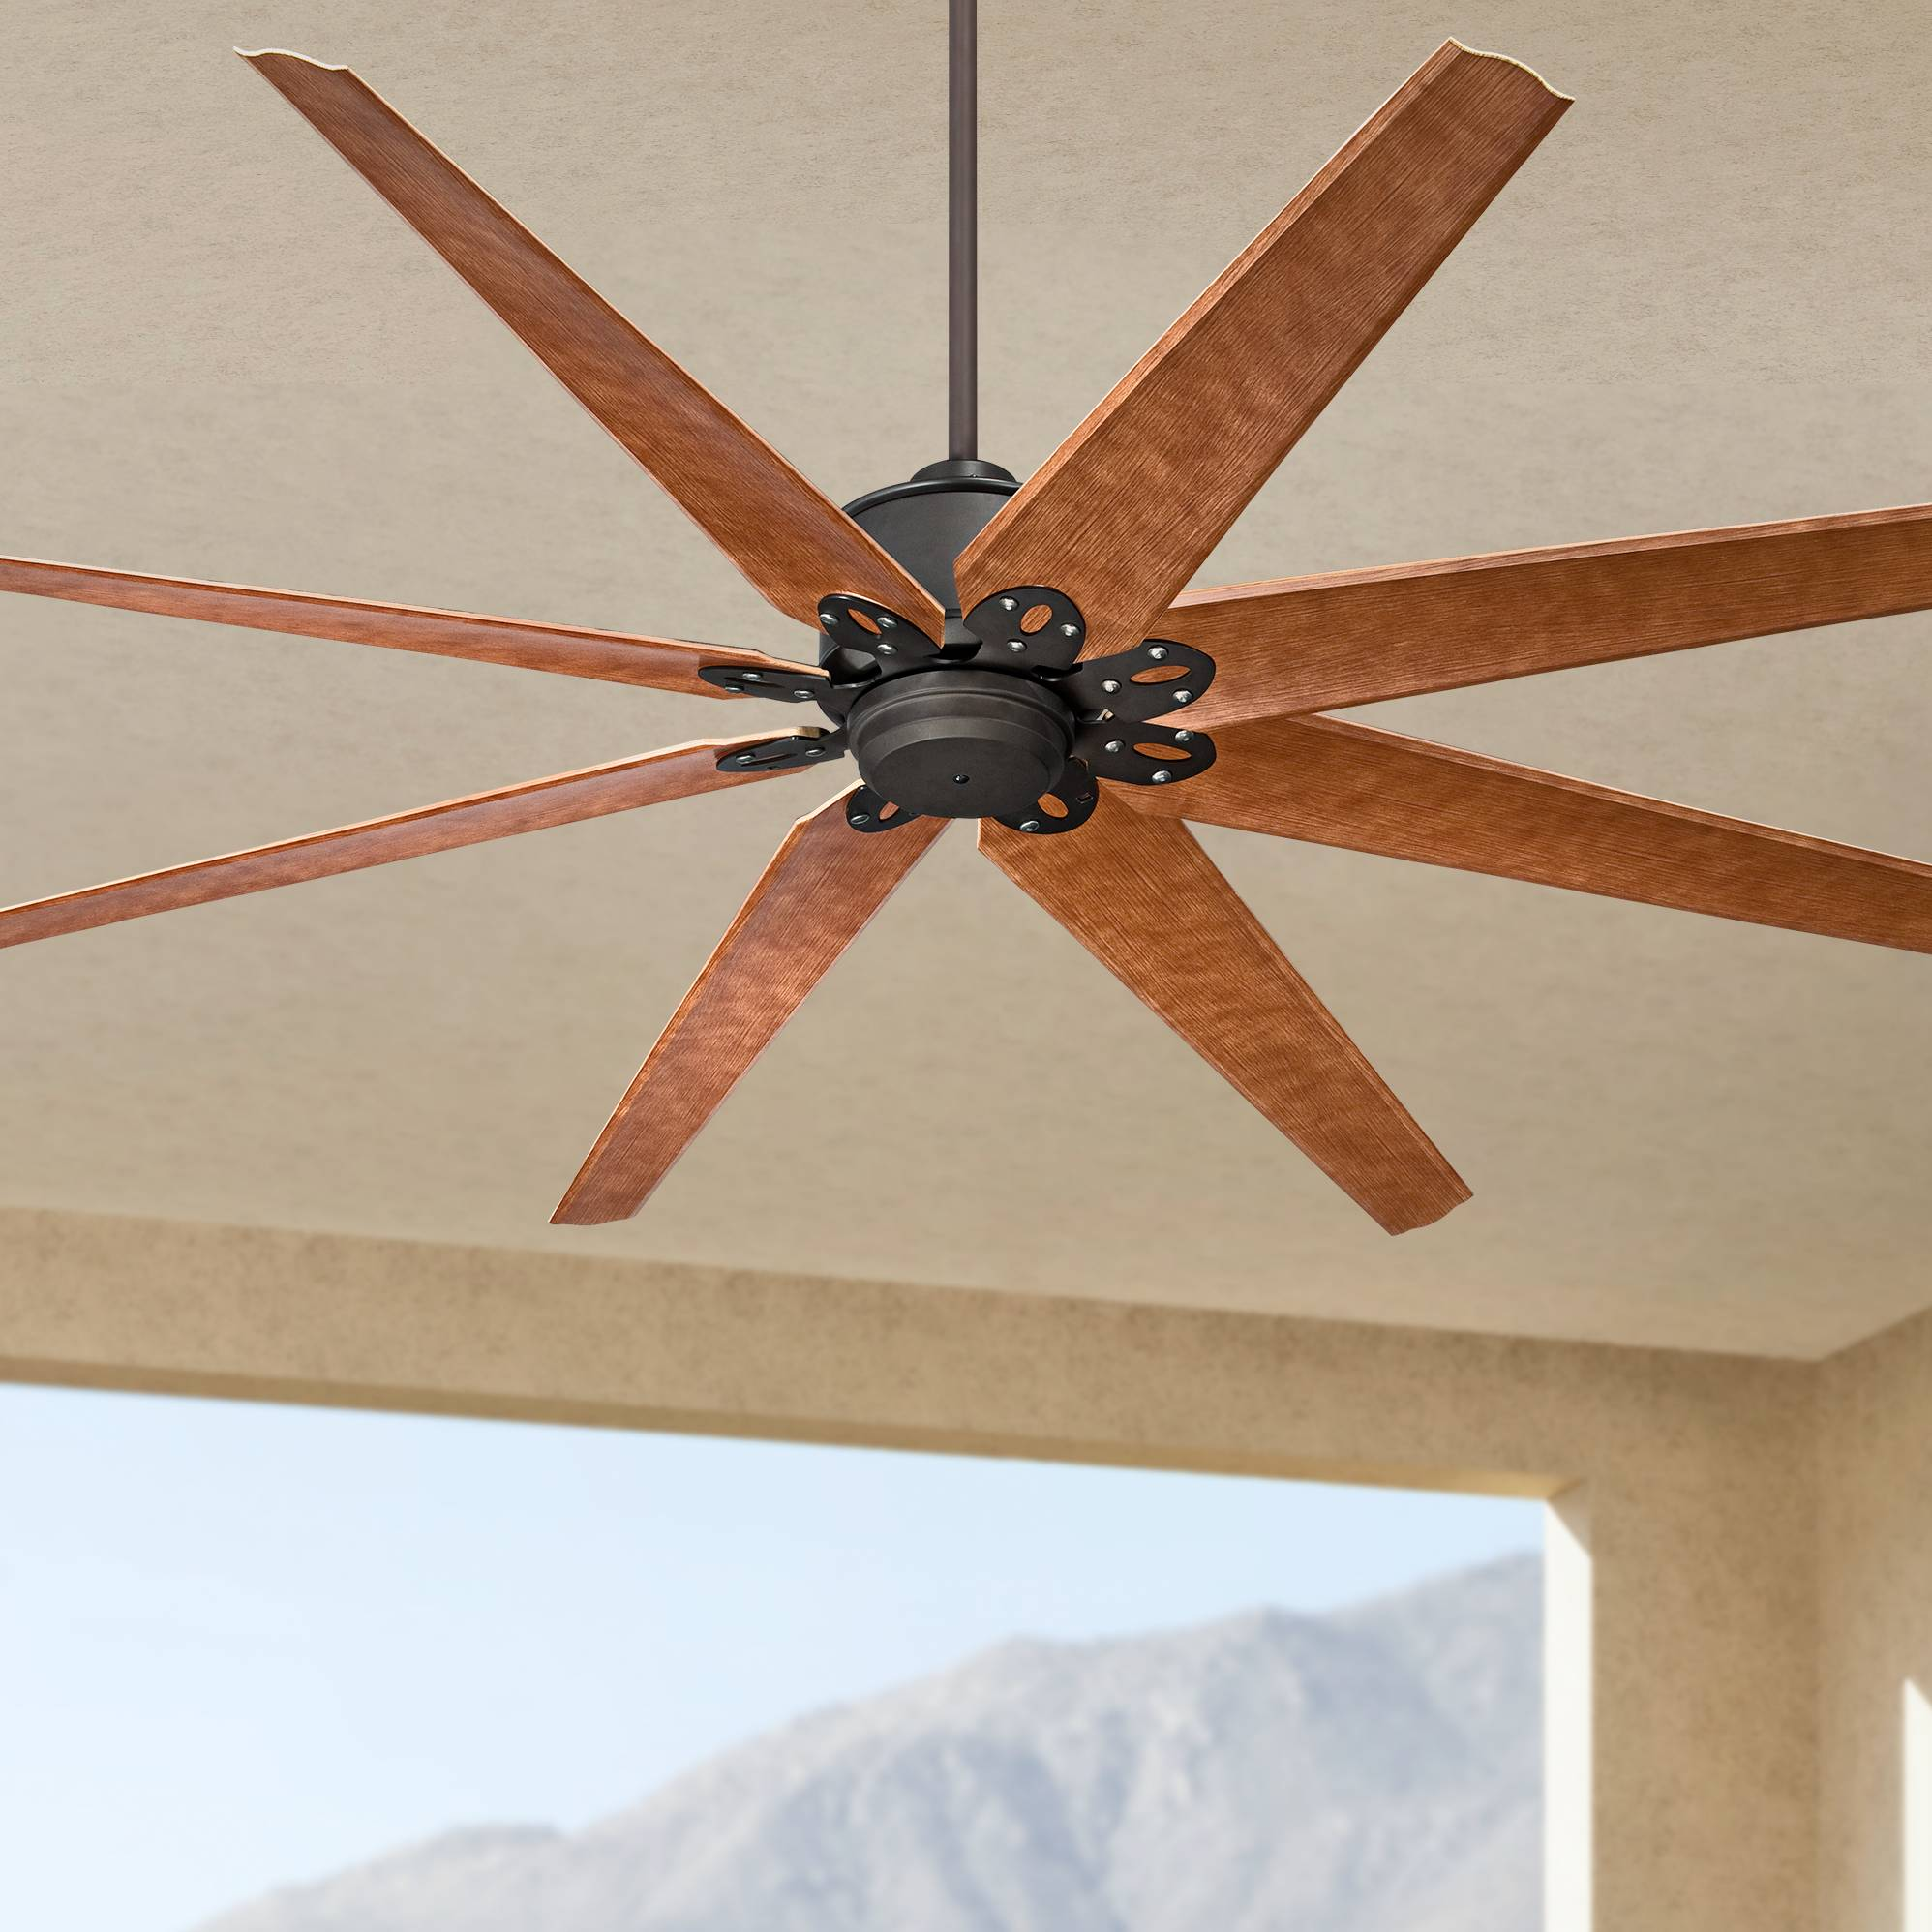 72 predator english bronze outdoor ceiling fan